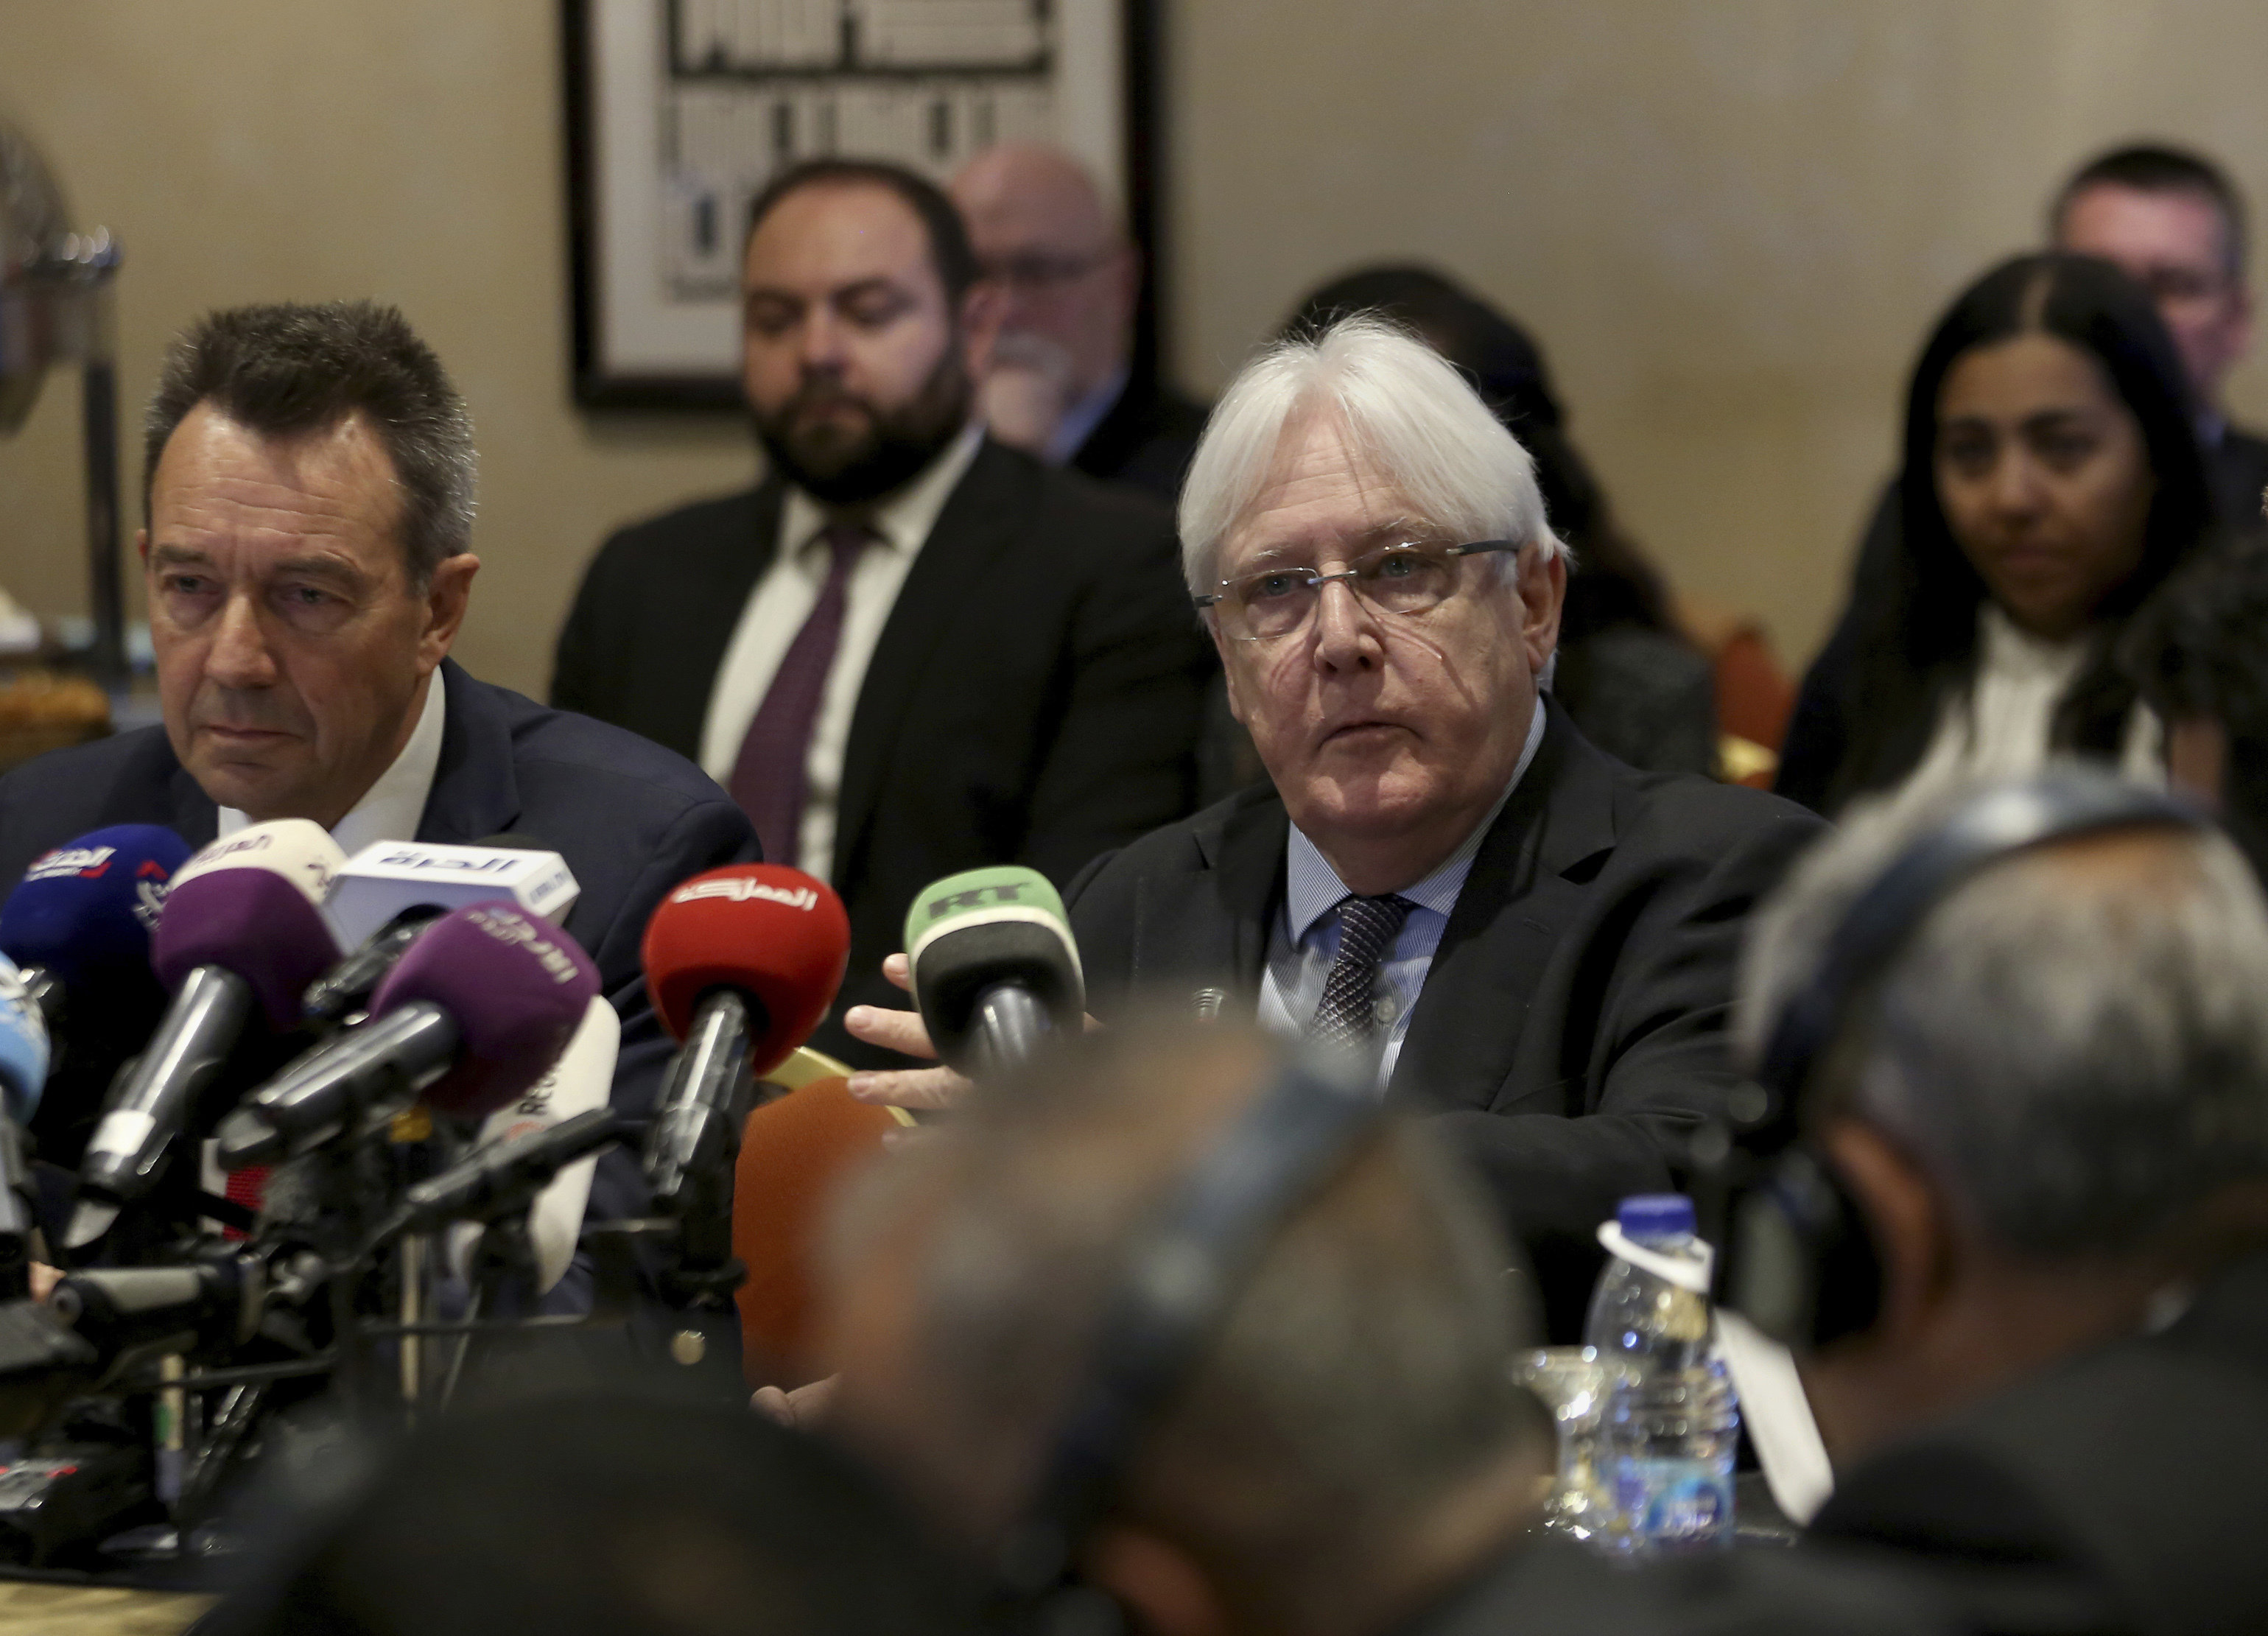 U.N. Special Envoy Martin Griffiths, center, participates in a new round of talks by Yemen's warring parties in Amman, Jordan, Feb. 5. (AP Photo/Raad Adayleh)